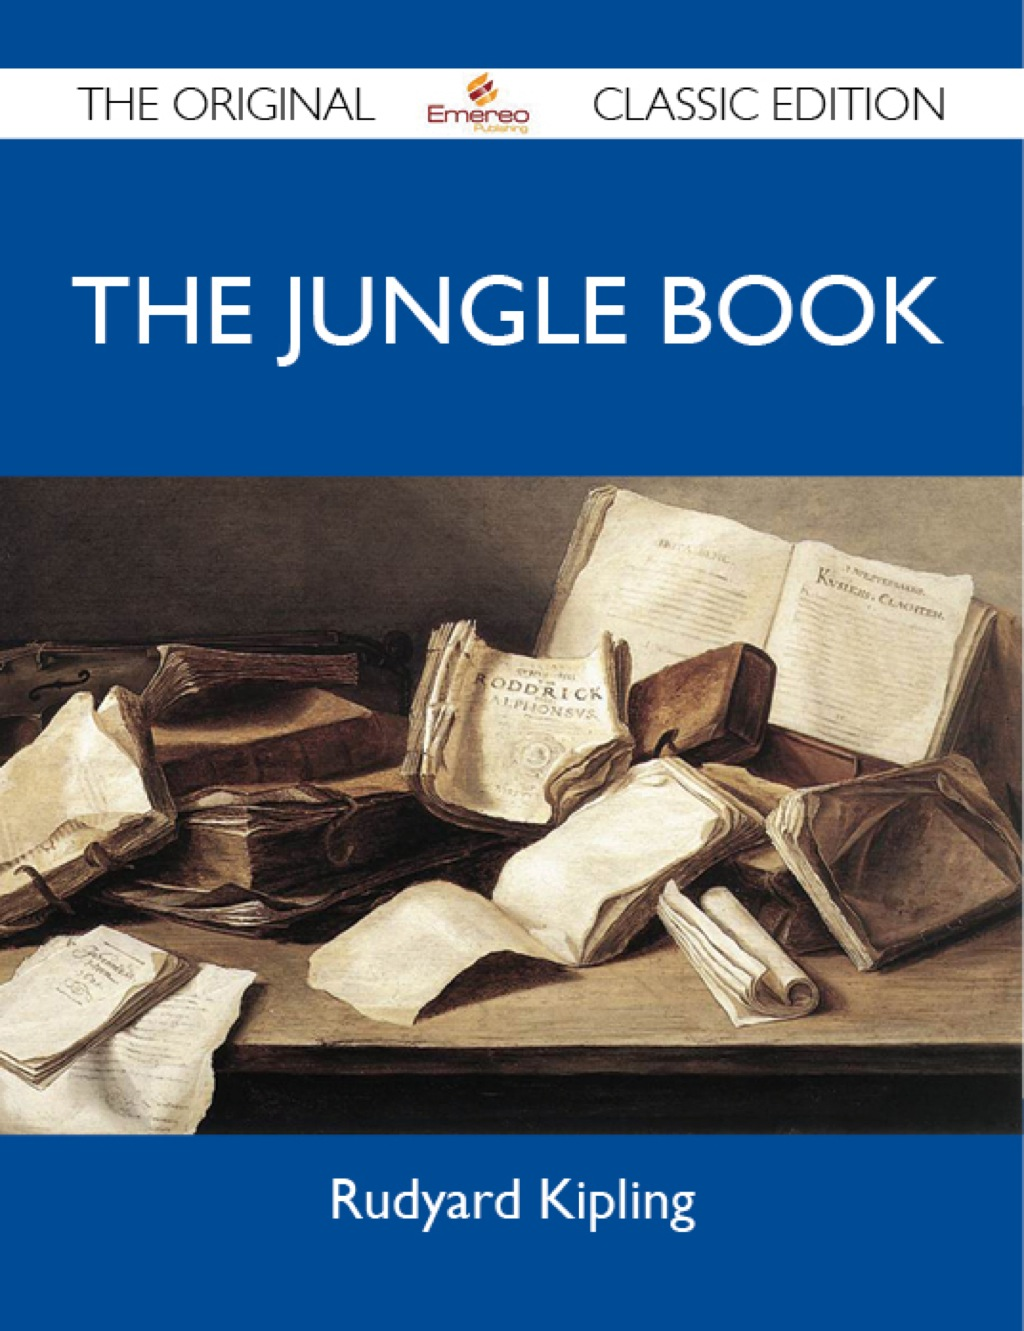 The Jungle Book - The Original Classic Edition (ebook) eBooks